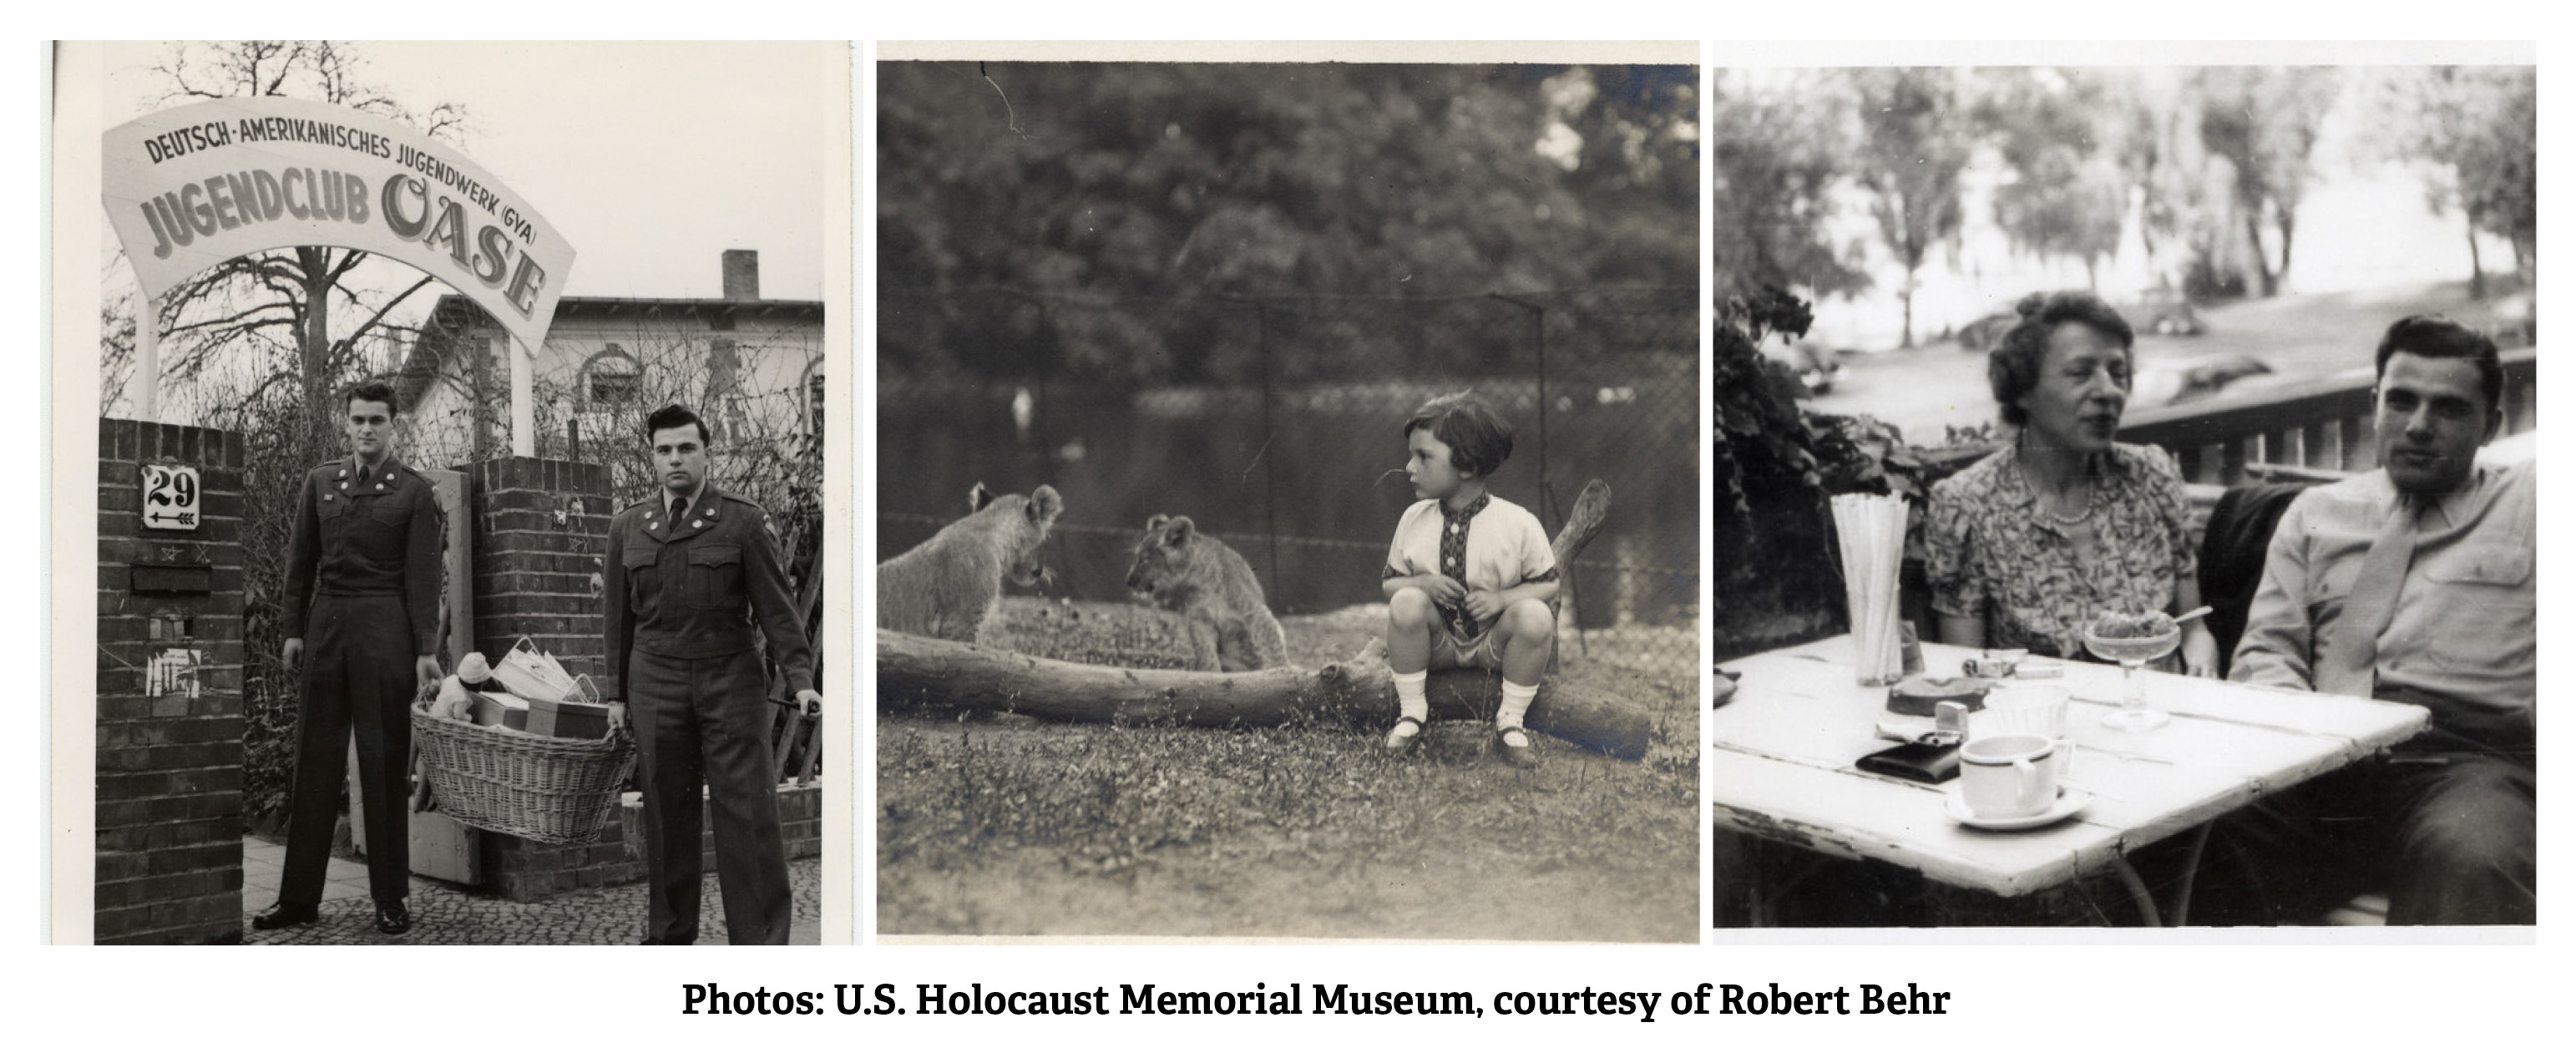 Three photos of from the U.S. Holocaust Memorial Museum, courtesy of Robert Behr. Left to right: 1. Robert Behr (a German Jewish survivor who later joined the US Army) and another American soldier pose outside the German-American Youth Club. After joining the US Army Robert Behr was tasked to run a German youth club to teach democratic values. 2. A young Robert Behr circa 1926-1929 sits on a log in front of two lion cubs at the Berlin petting zoo. 3. Robert Behr sits next to his mother at a table on an outdoor balcony in Berlin circa 1947-1950.